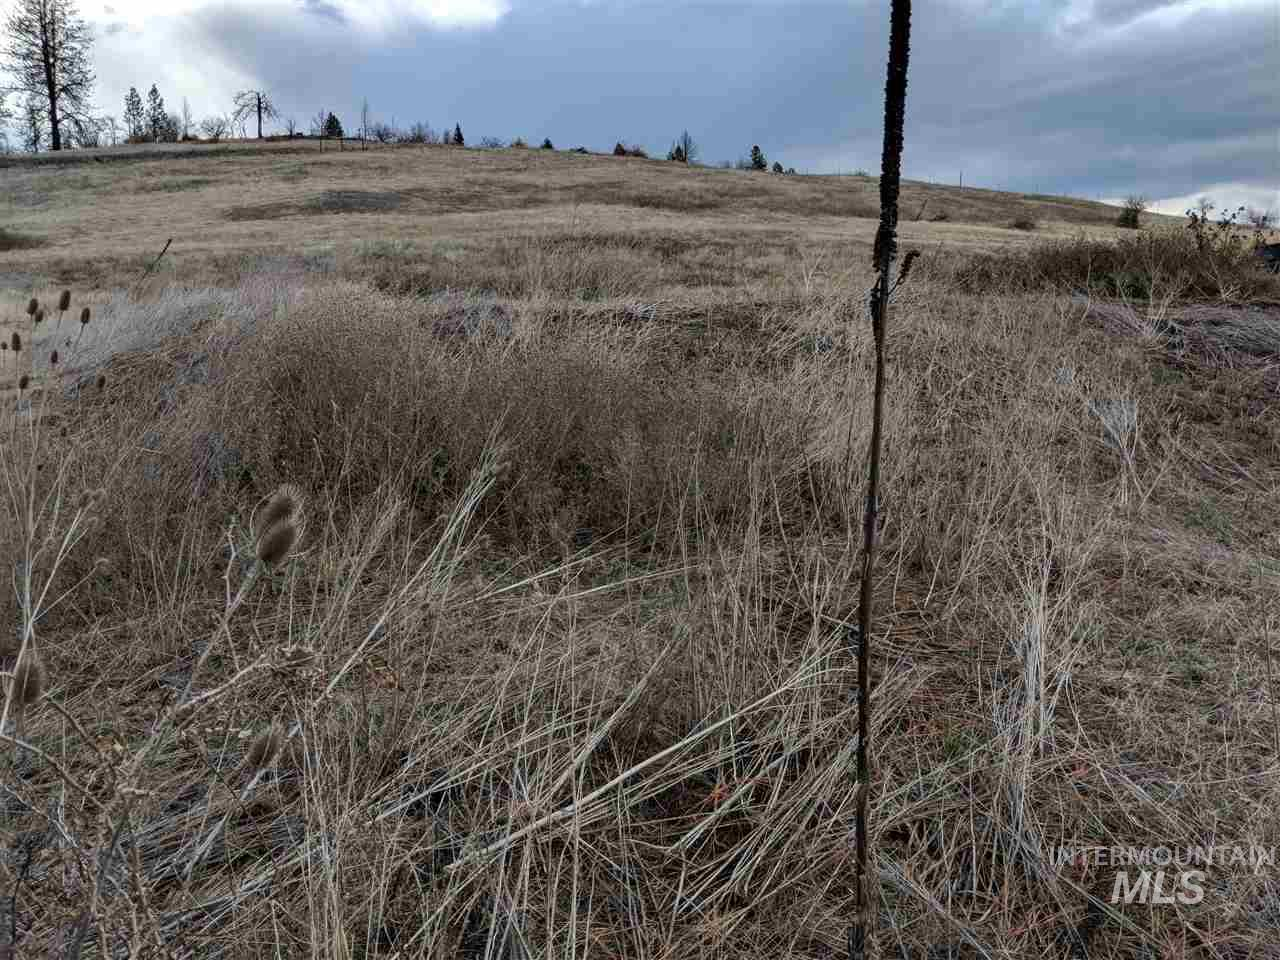 295 N Glenwood Rd, Kamiah, Idaho 83536, Land For Sale, Price $95,900, 98725912